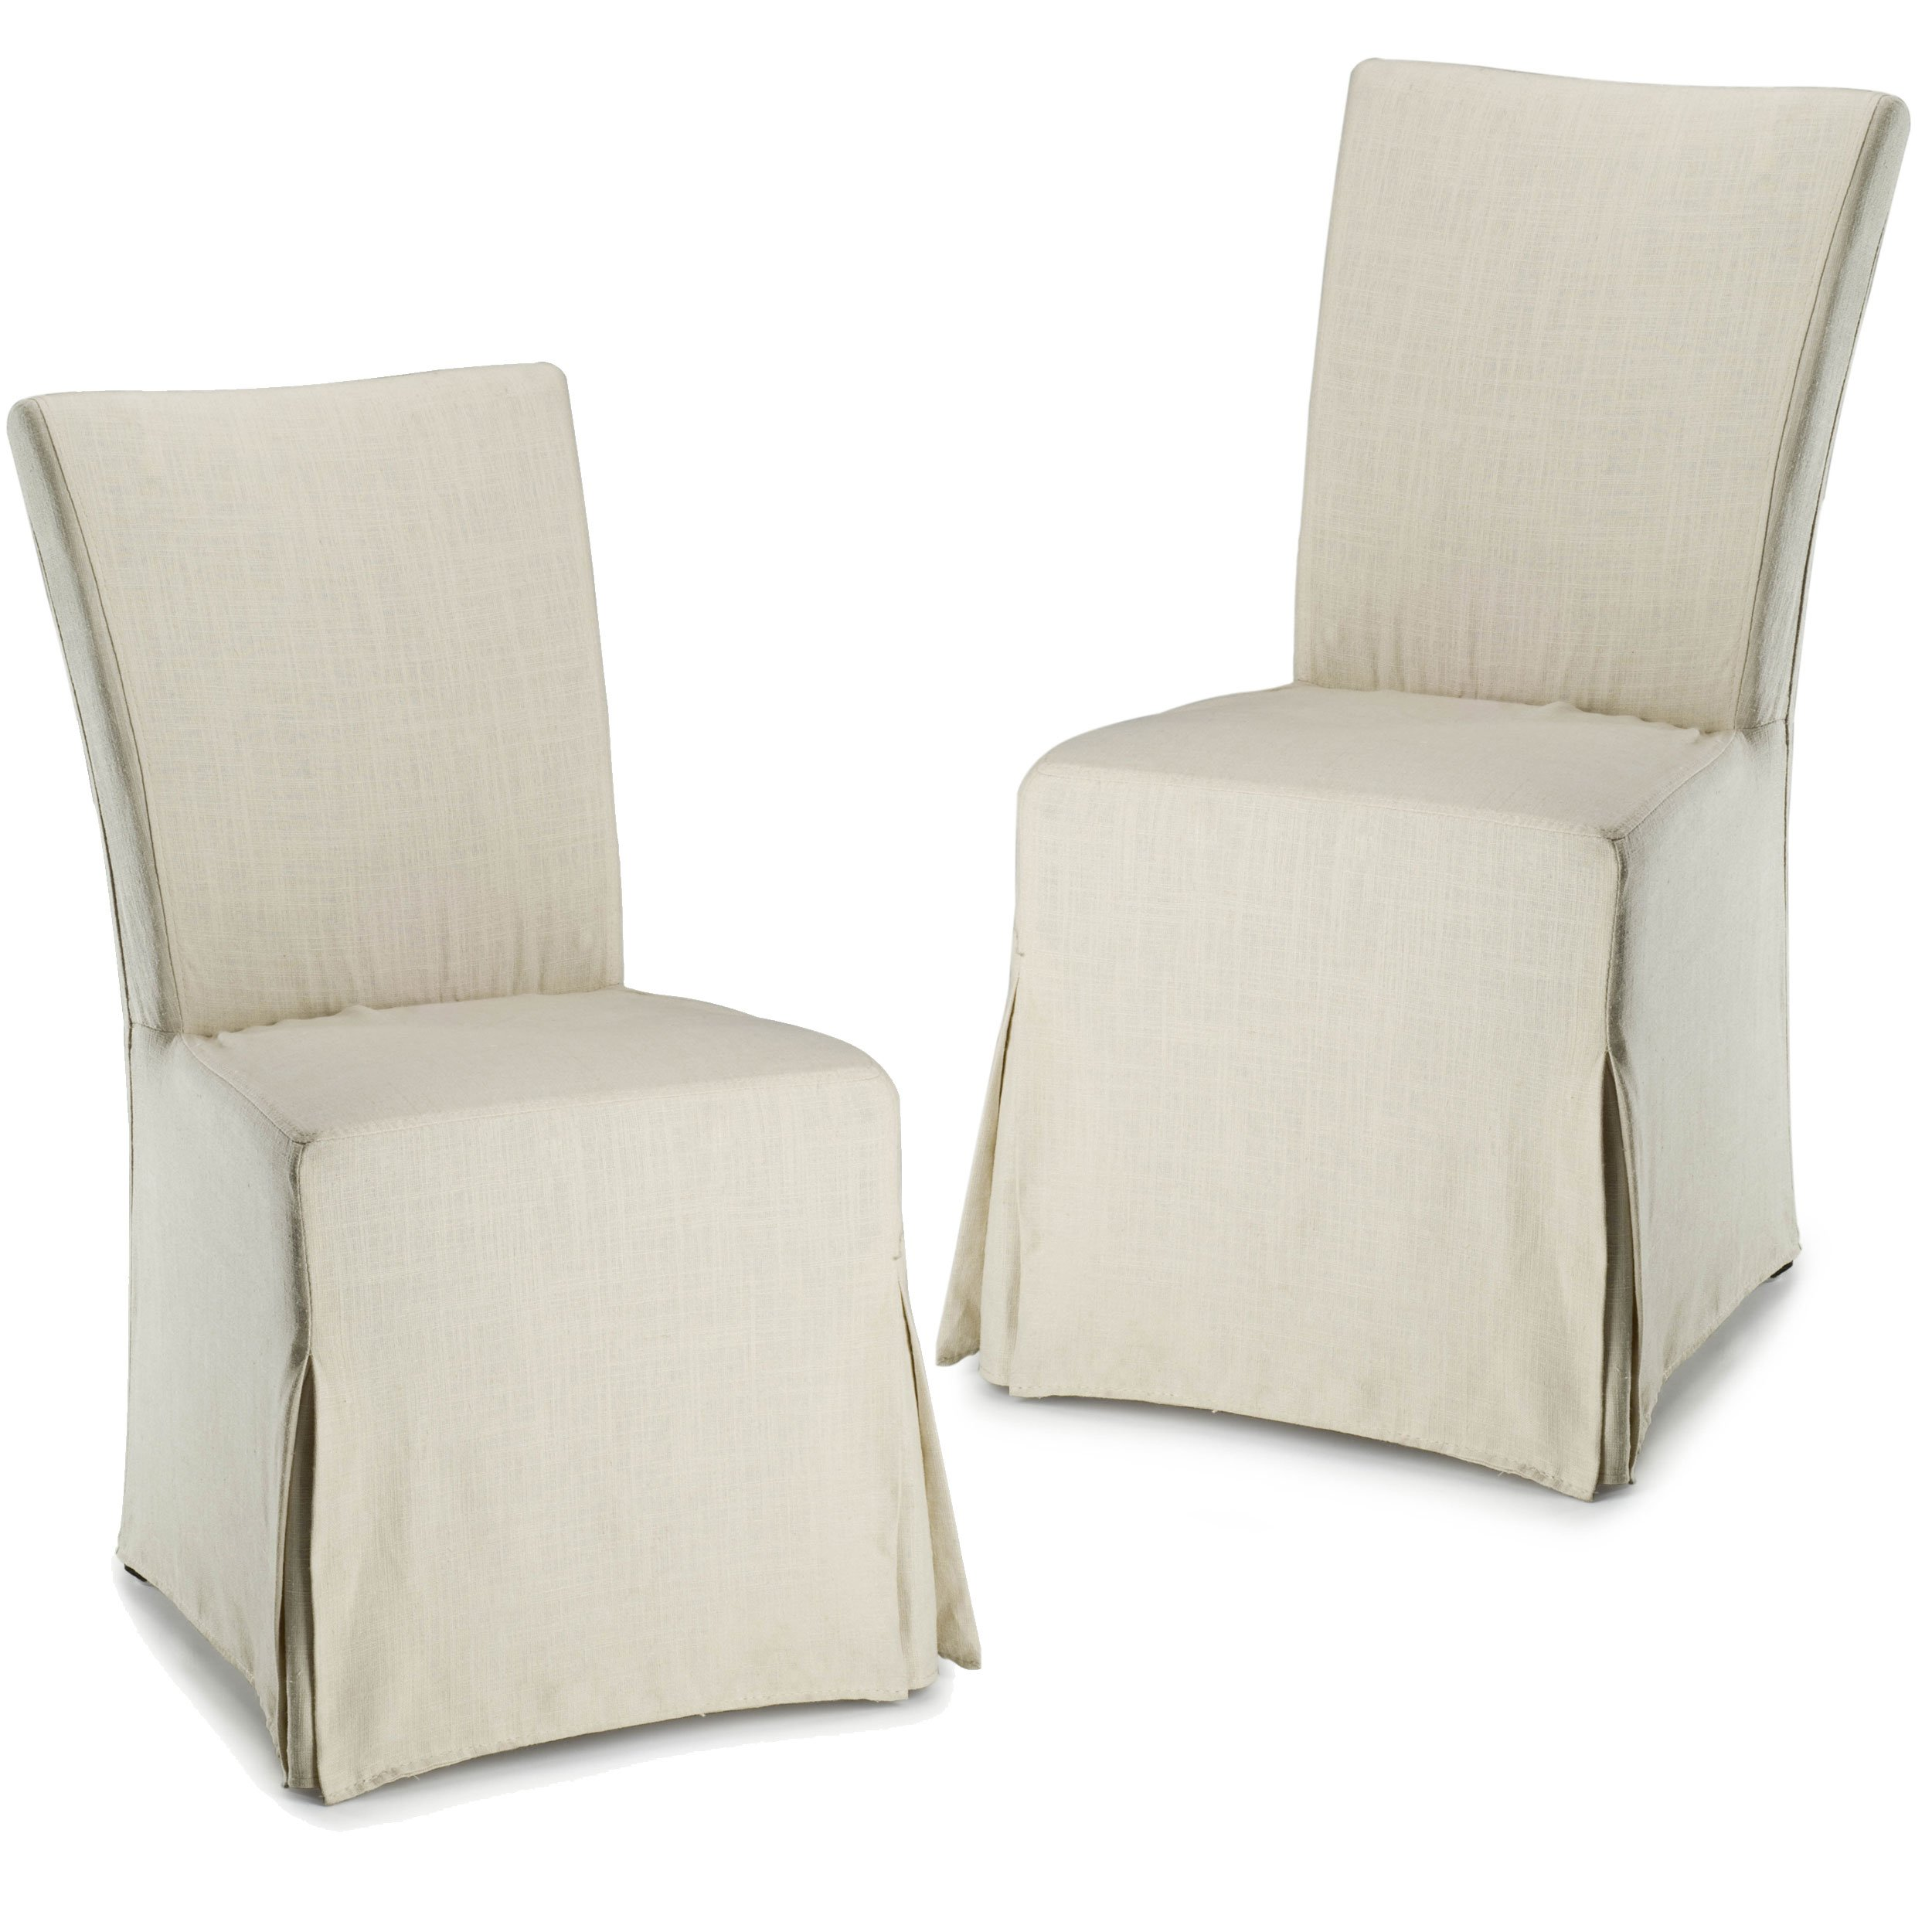 Safavieh Hudson Collection Ella Linen Slipcover Side Chairs, Beige, Set of 2 by Safavieh